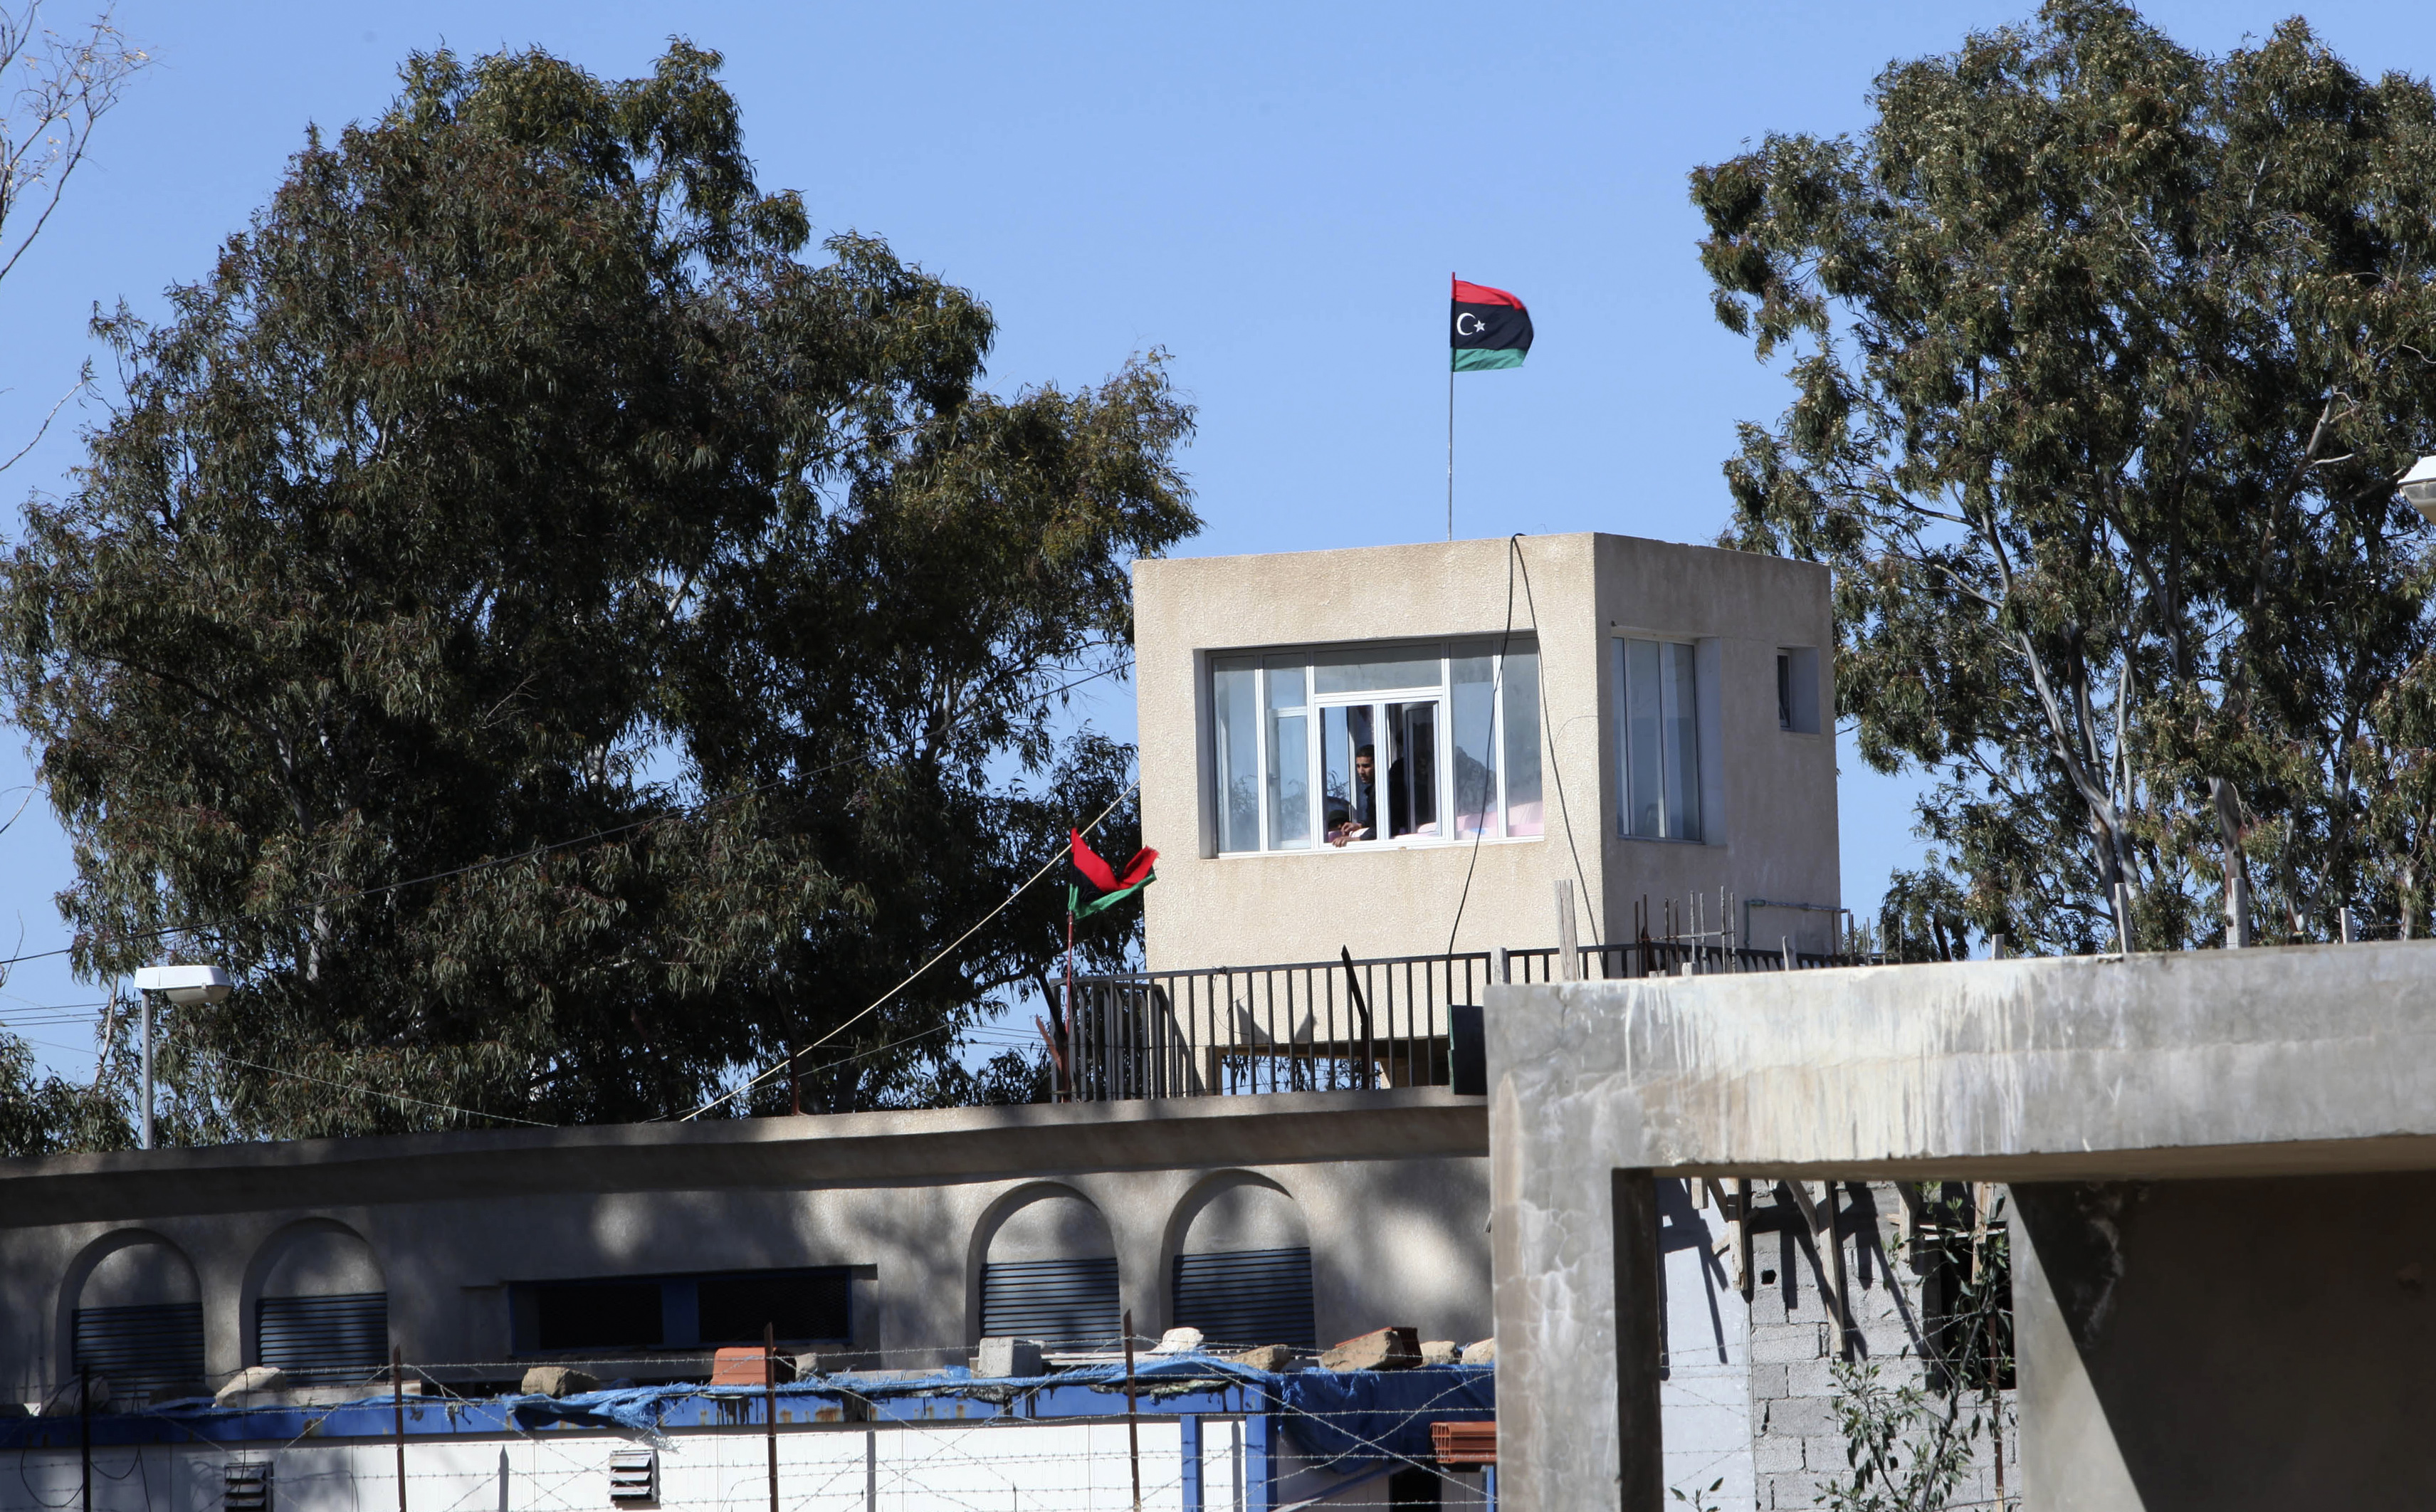 The Ain Zara prison, which was handed over to the Justice Ministry from a Tripoli-based militia, seen in Tripoli, Libya on Feb. 2, 2012.